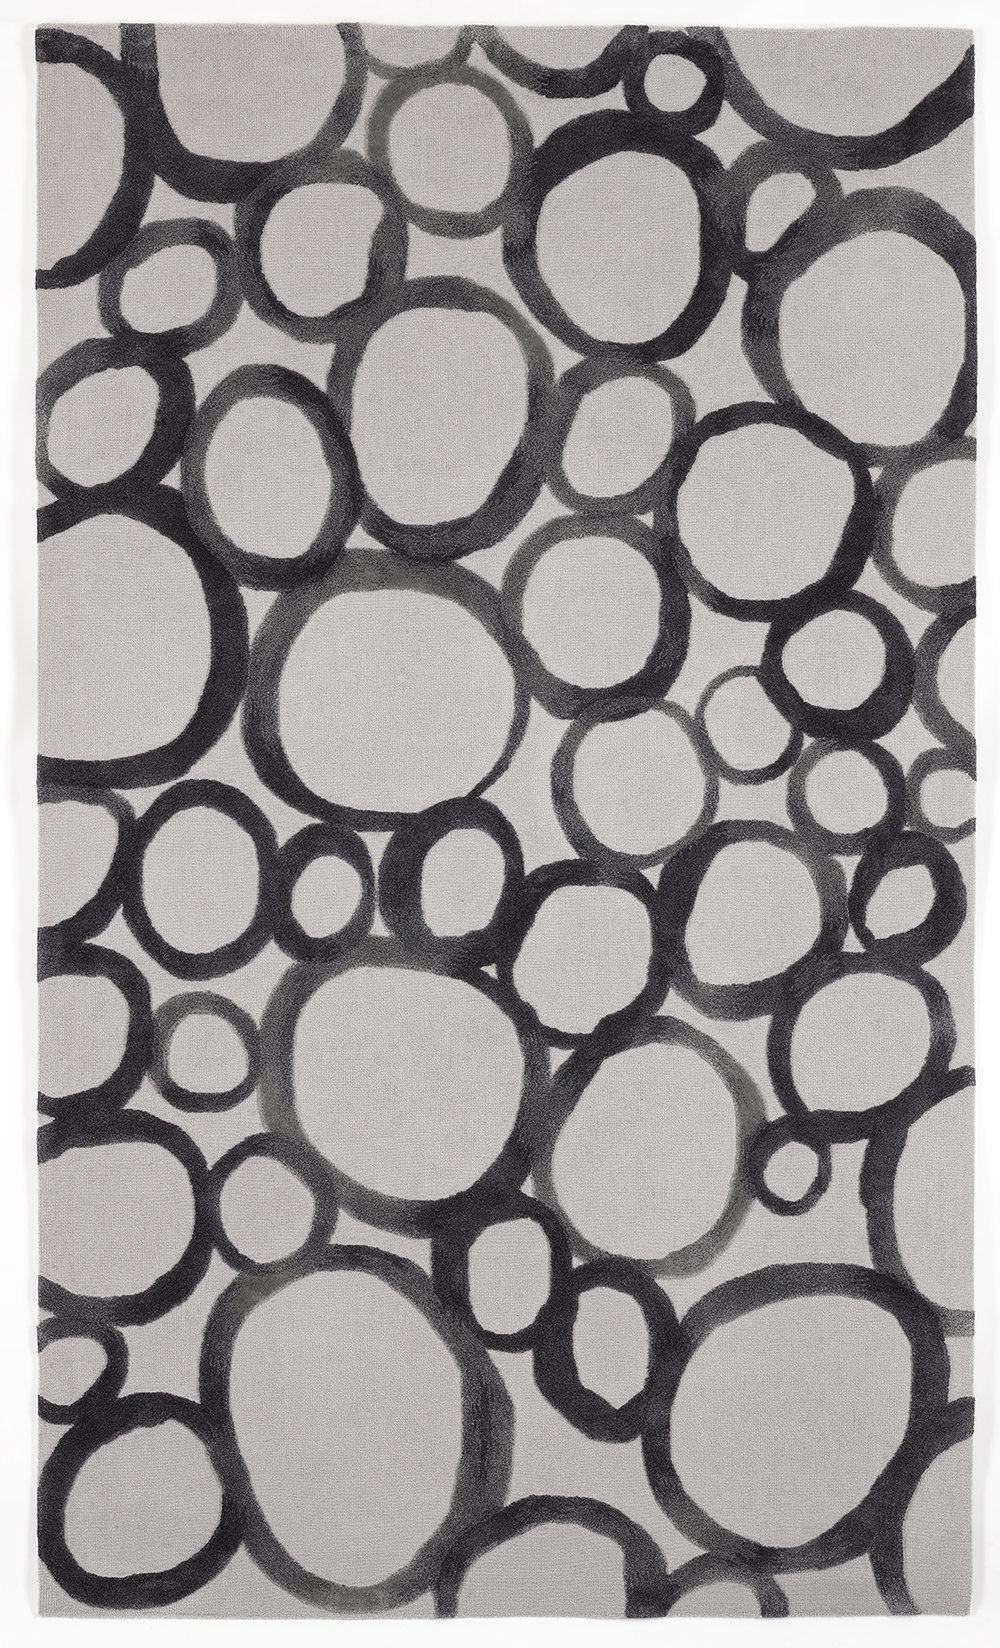 Bubbles in Pewter